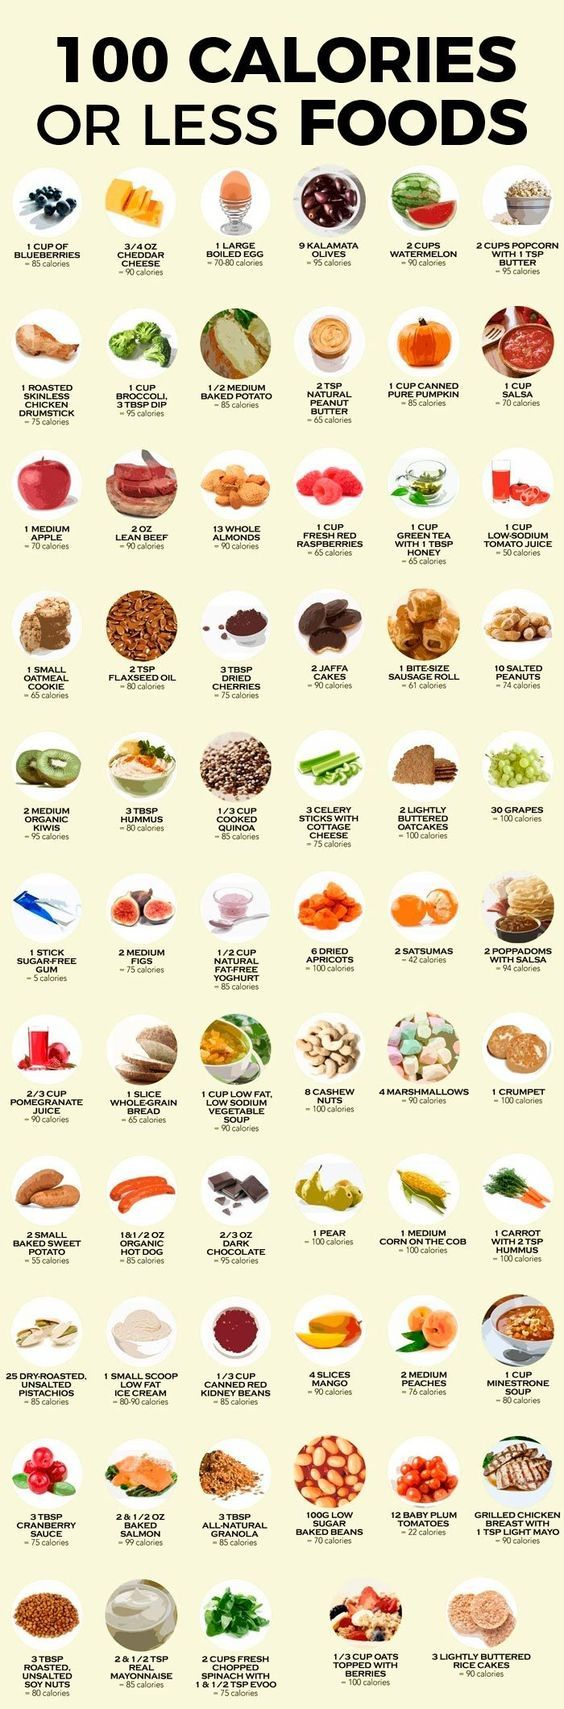 100 calories or less foods